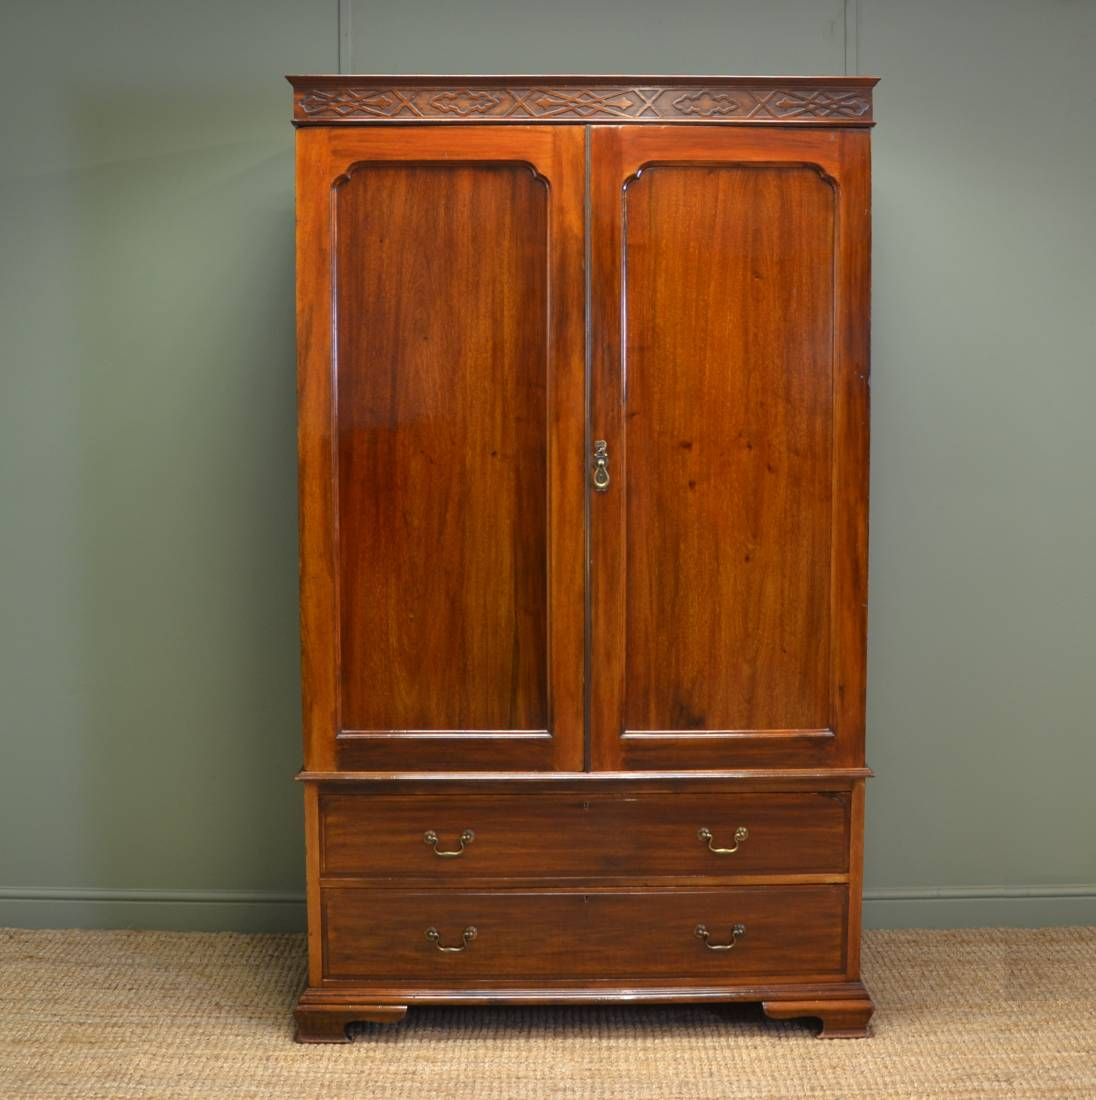 Waring and Gillows Antique Mahogany Double Wardrobe